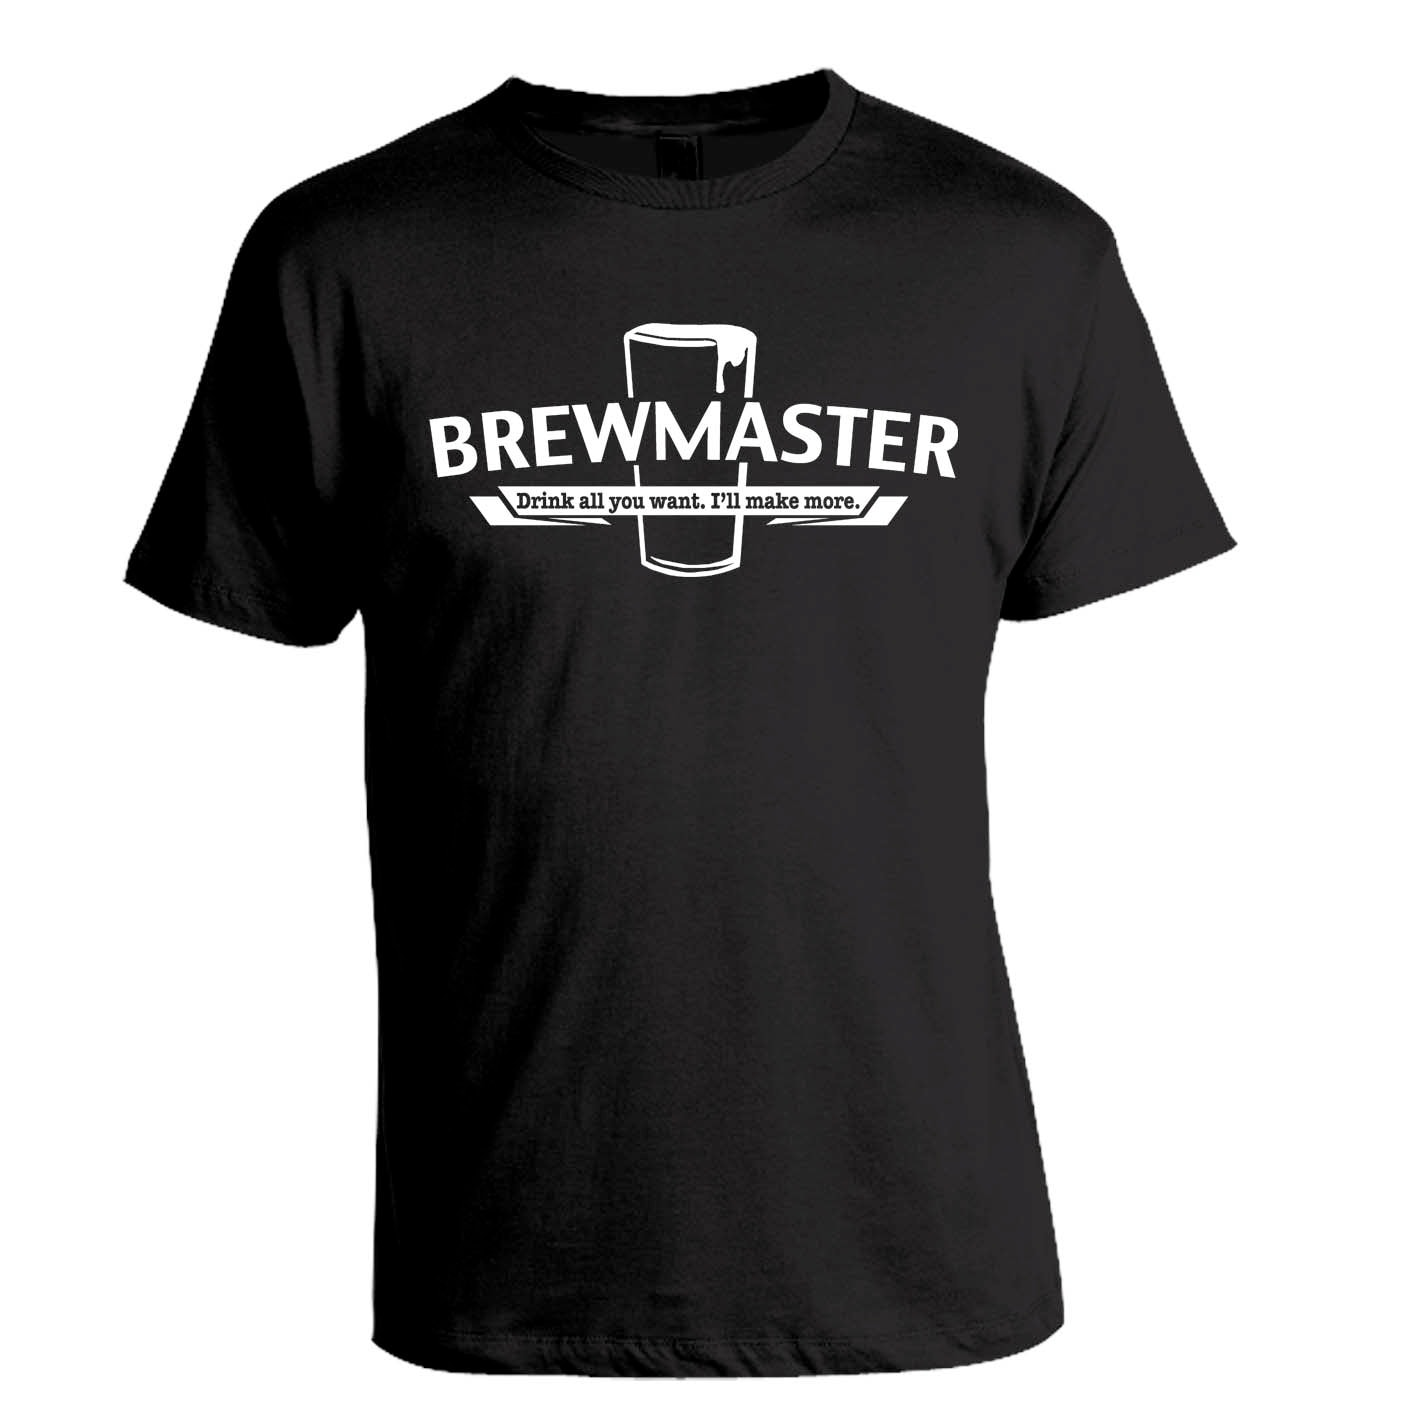 Brewmaster homebrew craft beer t shirt by brewershirts on etsy for Craft brewery t shirts